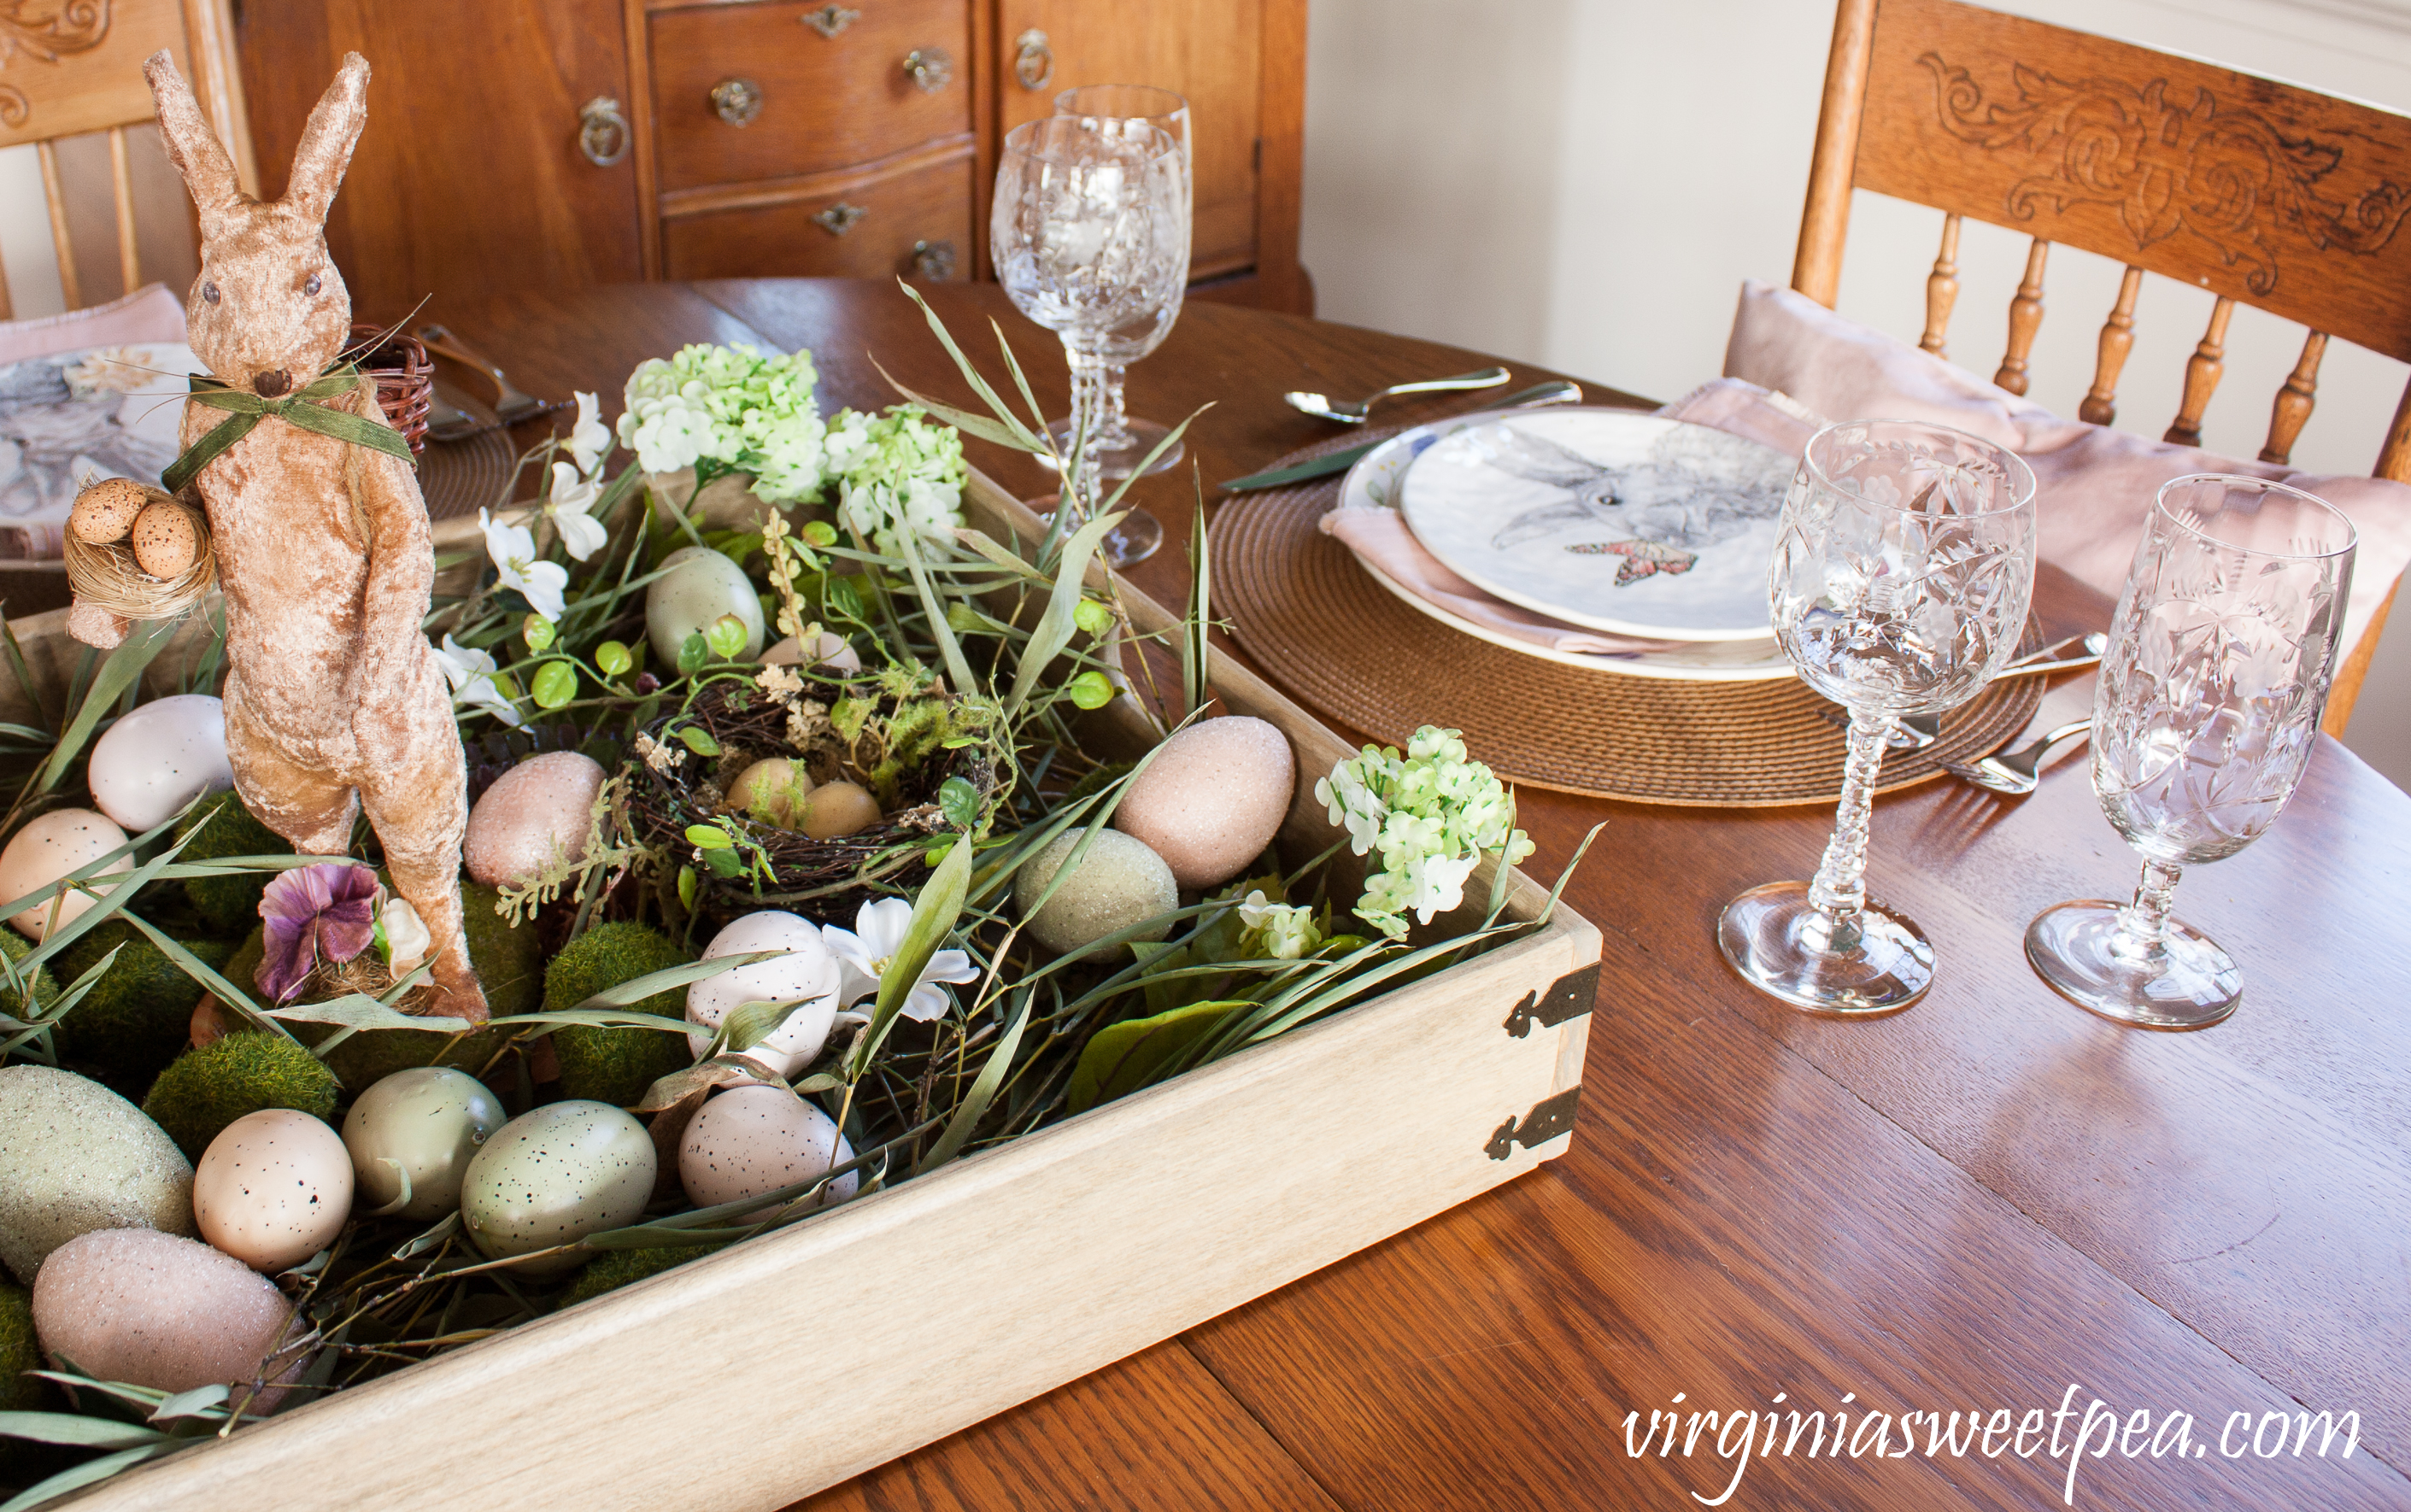 Easter Tablescape with a Farmhouse Style Centerpiece #easter #eastercenterpiece #eastertablescape #farmhouse #farmhousecenterpiece #farmhousetable #eastertable